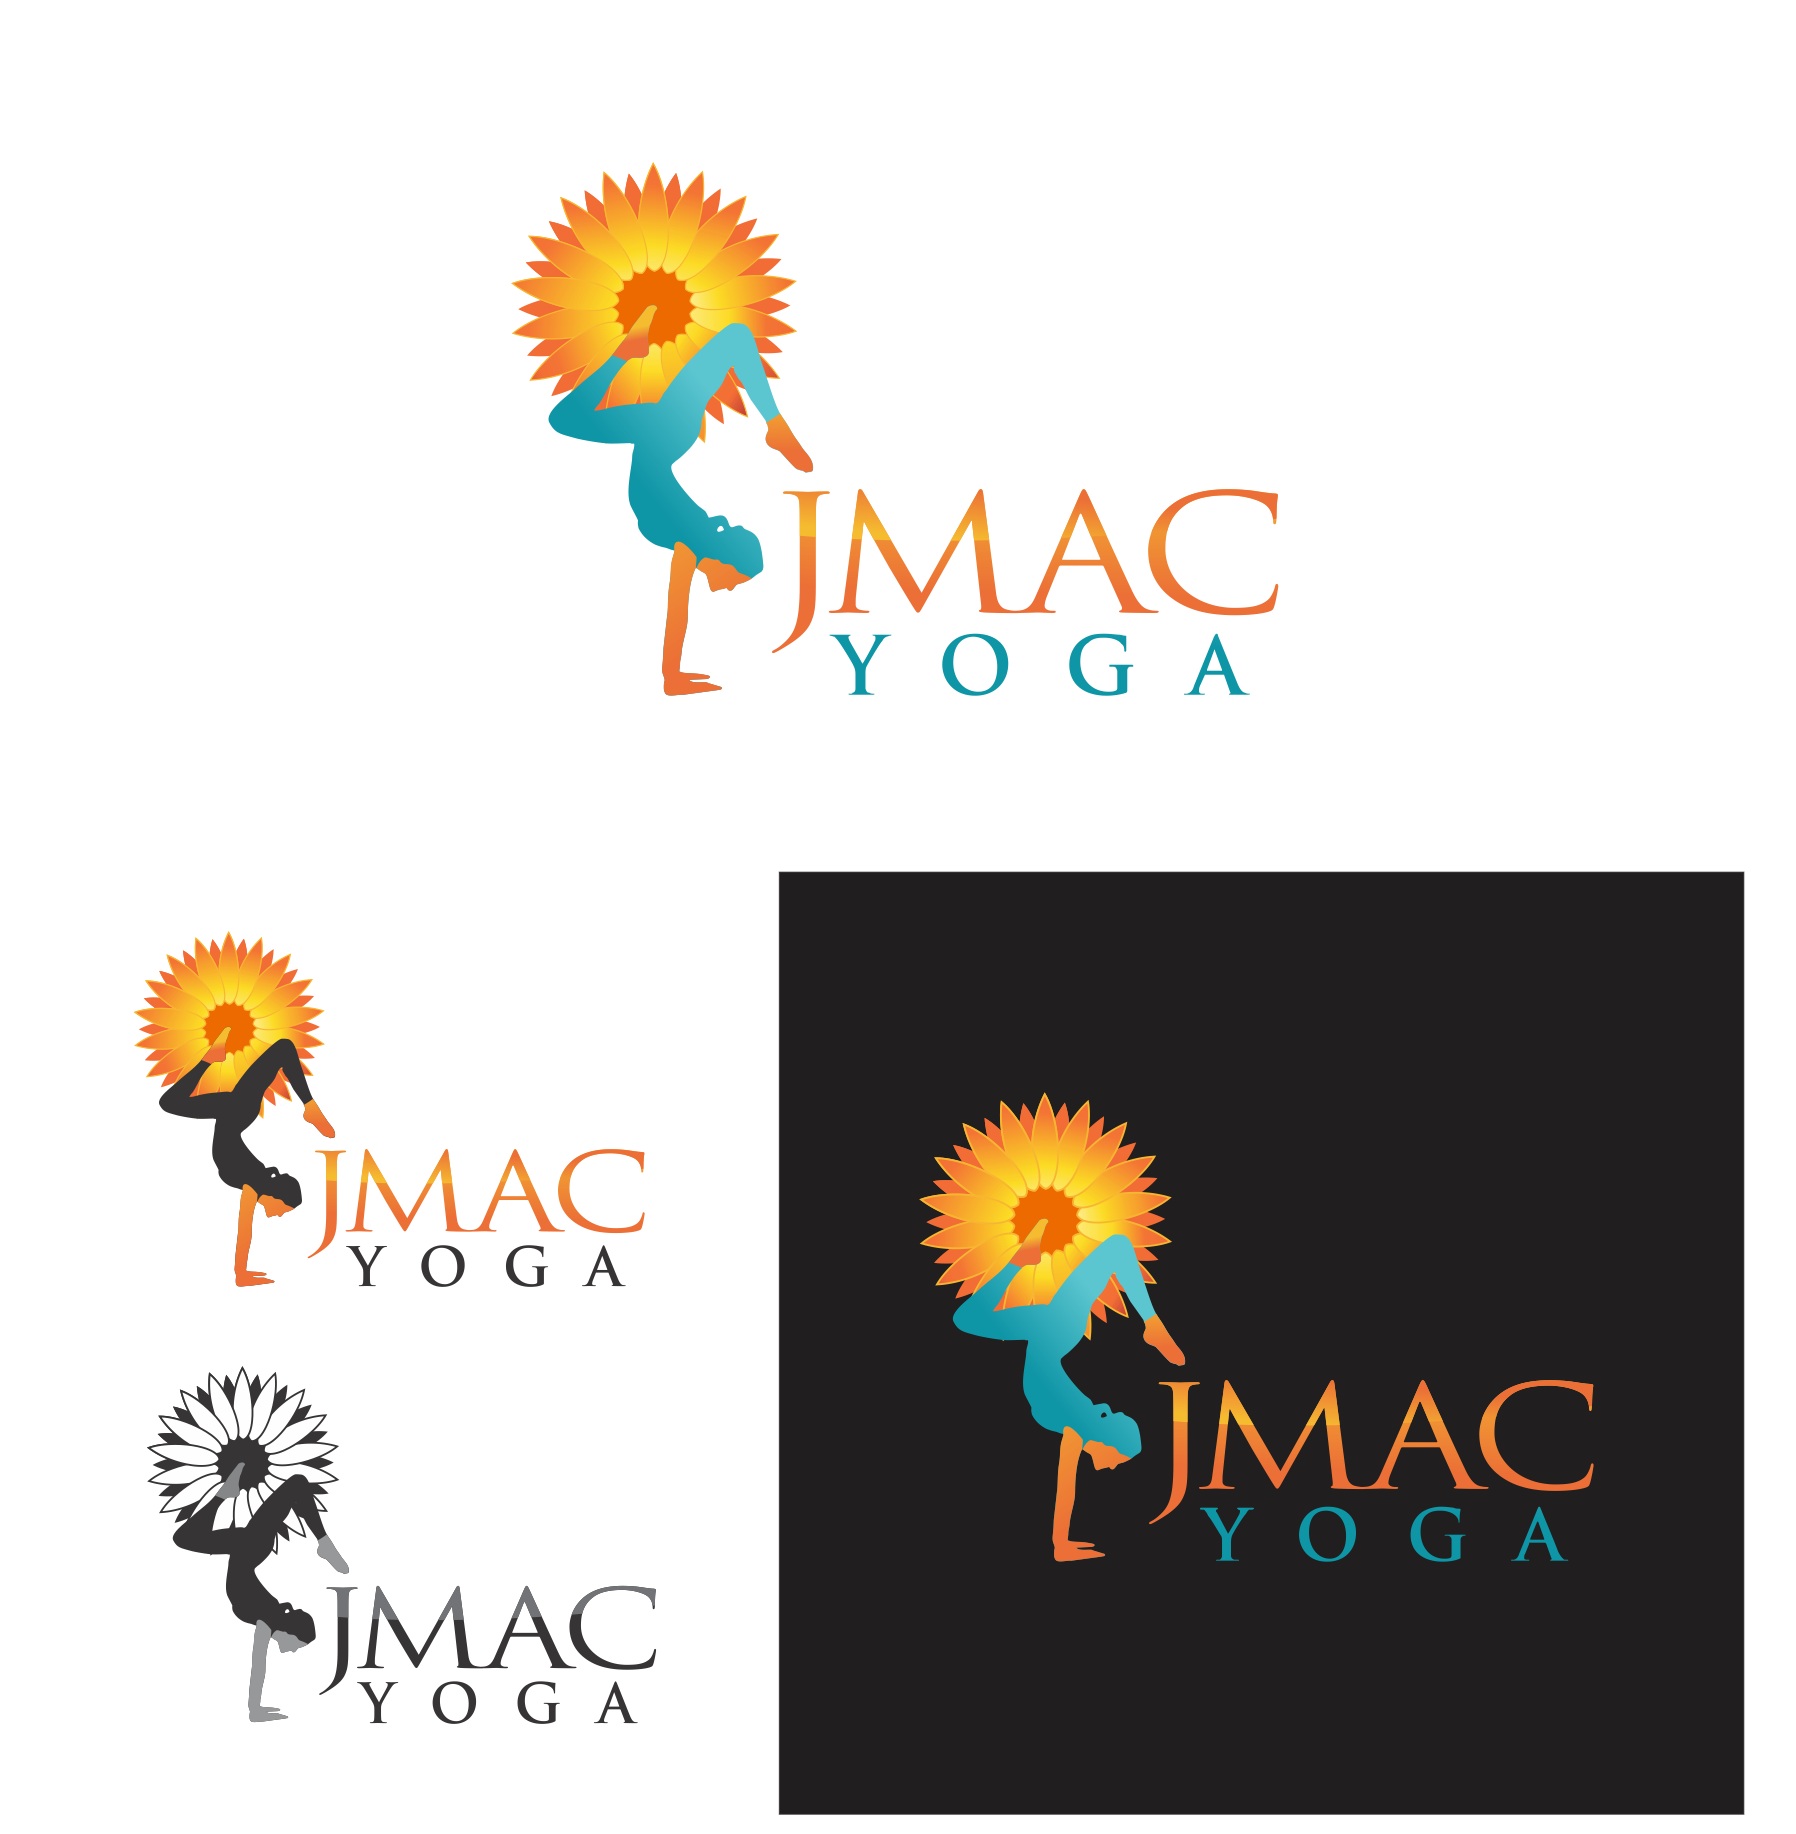 Inspire Wellness and self improvement for JMAC Yoga !